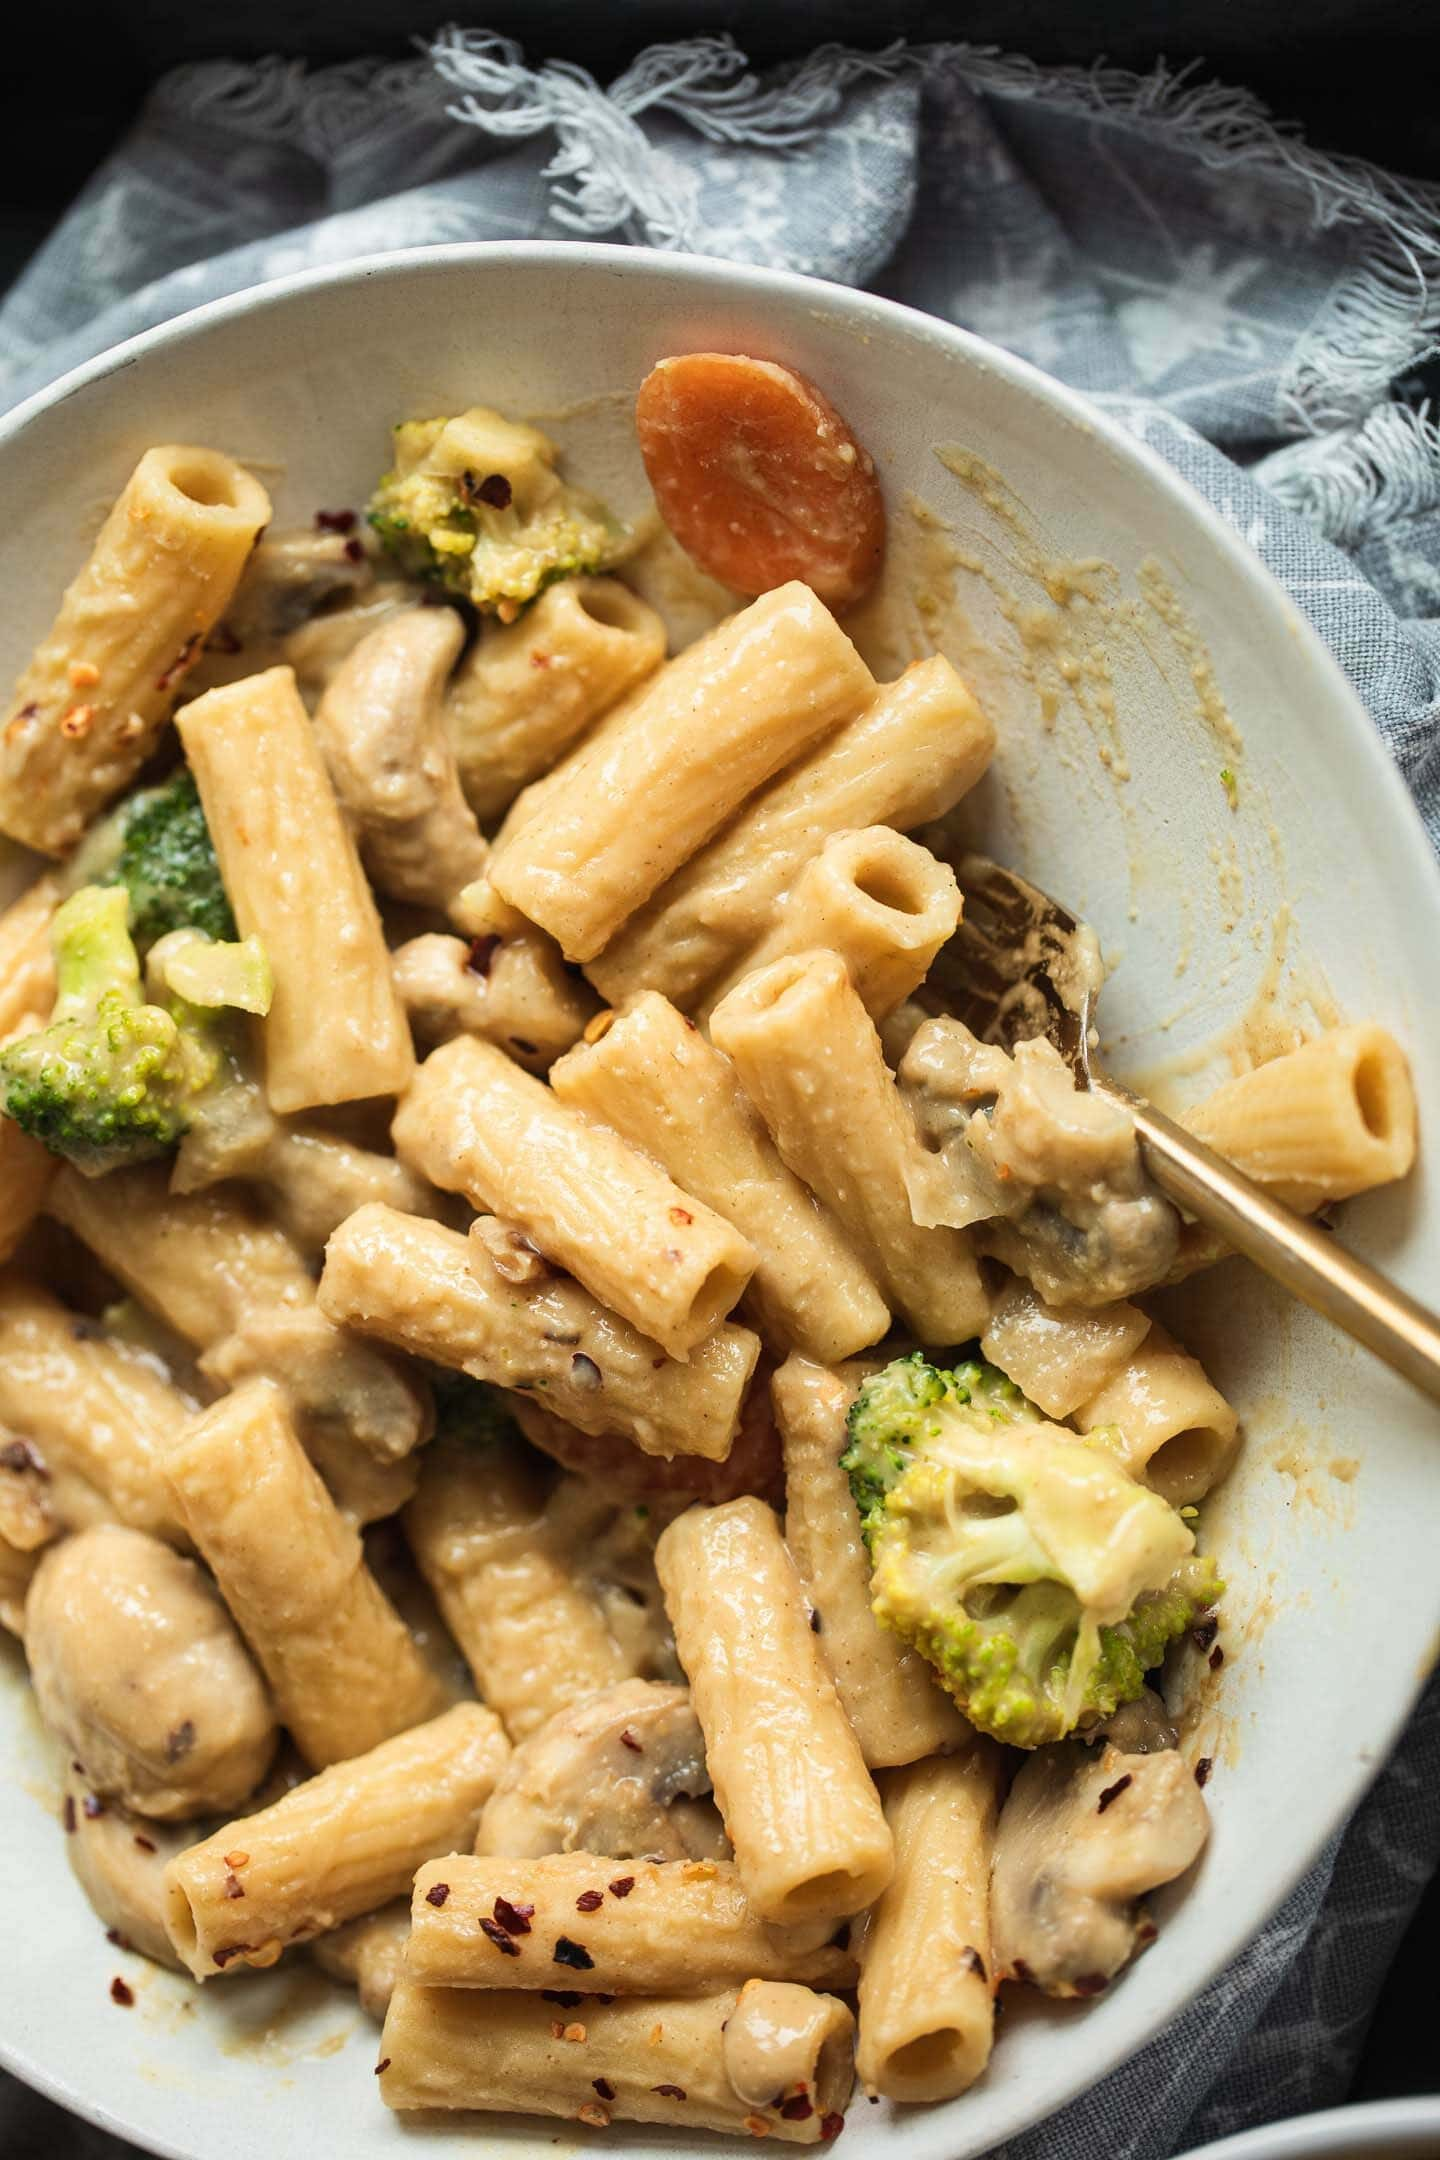 Bowl of pasta with mushrooms, broccoli and carrots